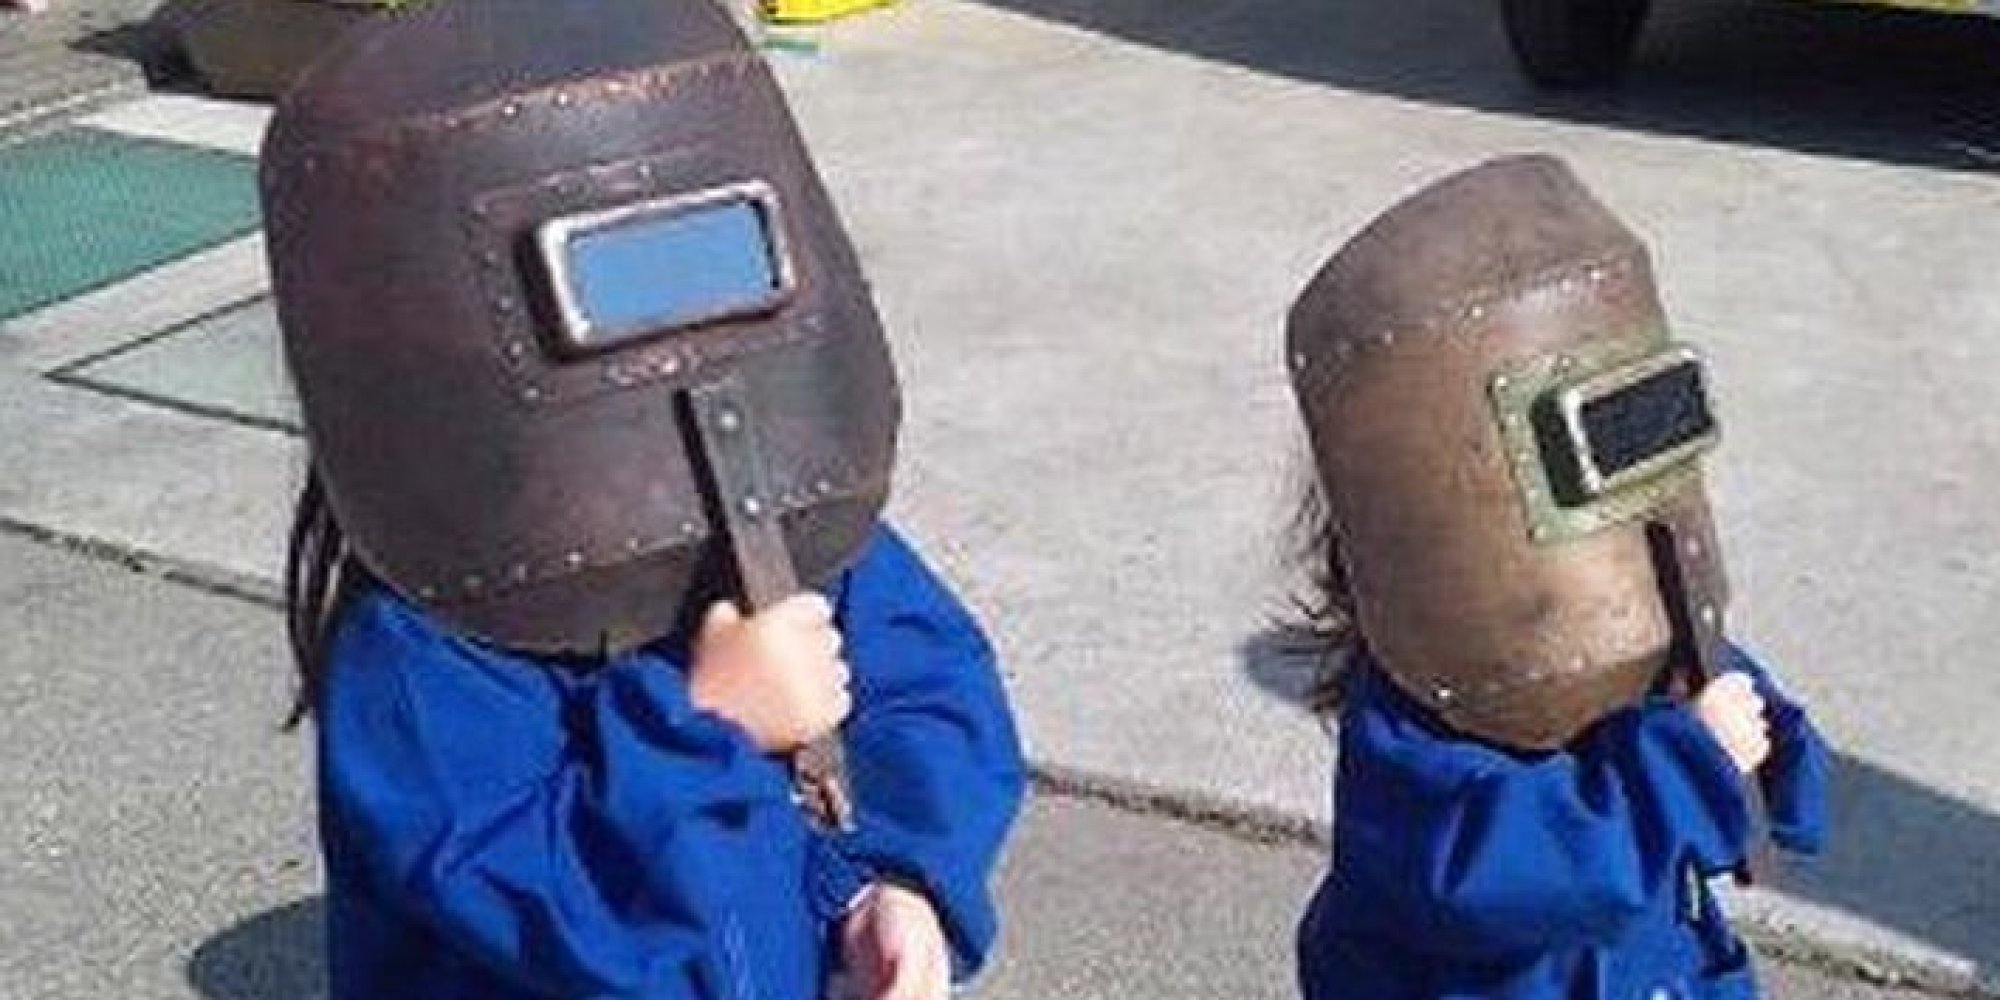 Solar Eclipse 2015 Pictures Reveal Welding Masks And ...